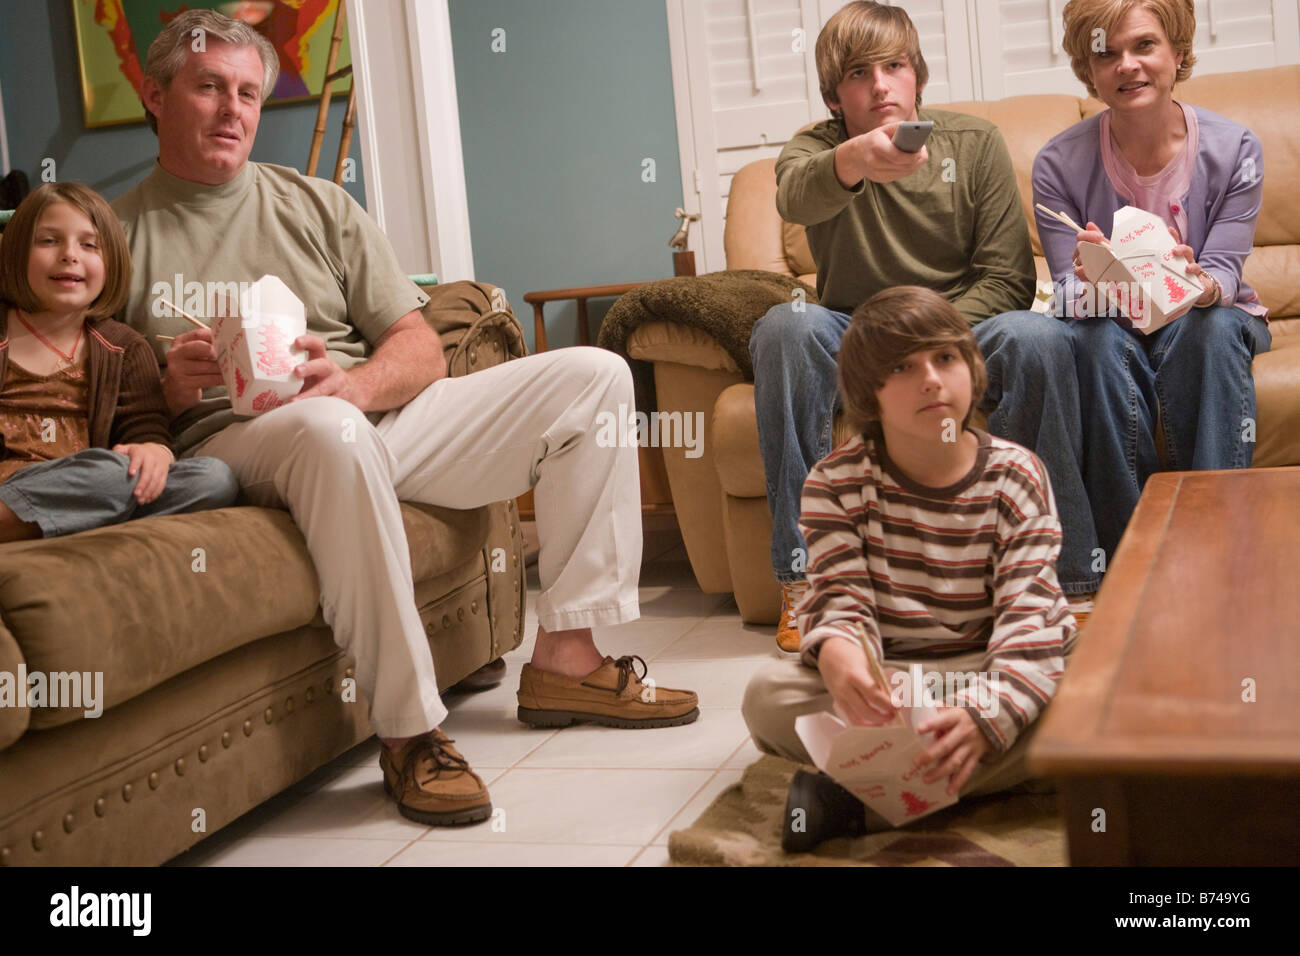 Family eating Chinese takeout dinner on couch watching TV - Stock Image